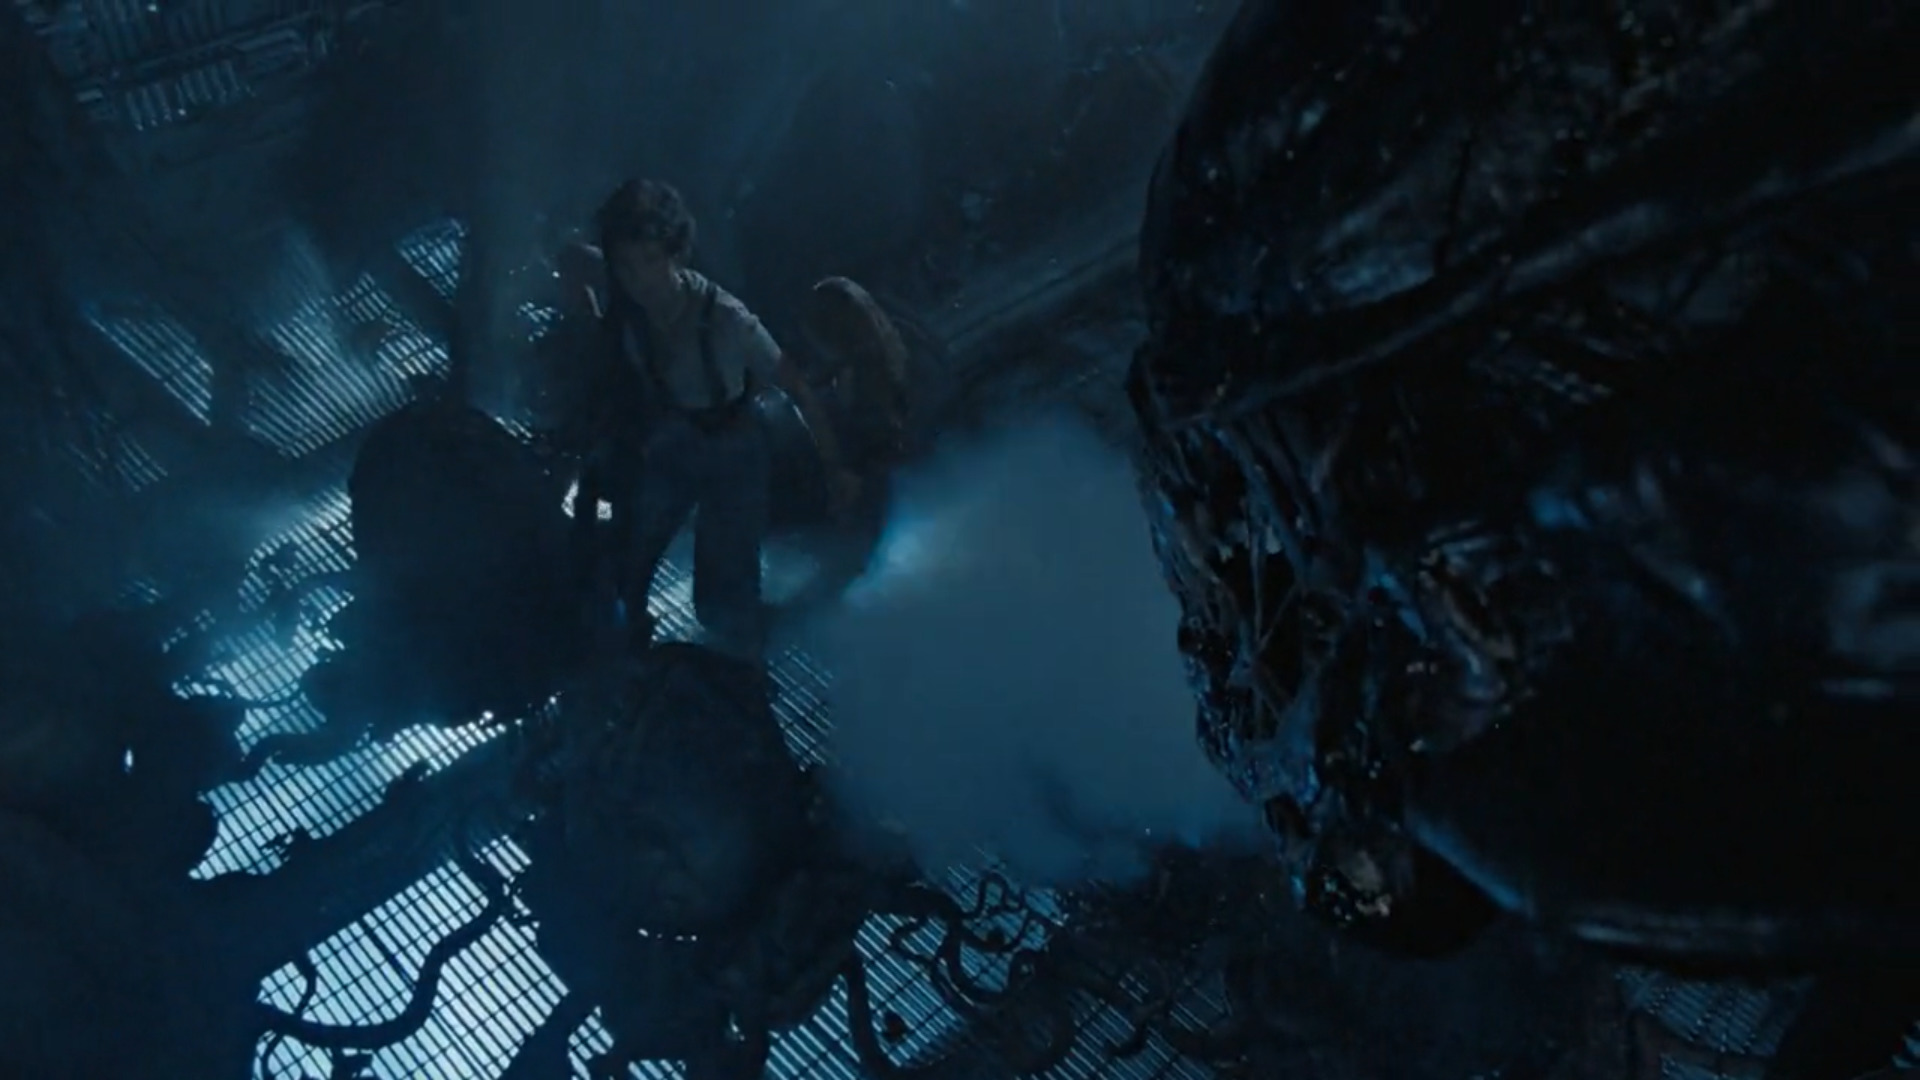 Ripley and Newt come face to face with the Xenomorph Queen and her horde of eggs.